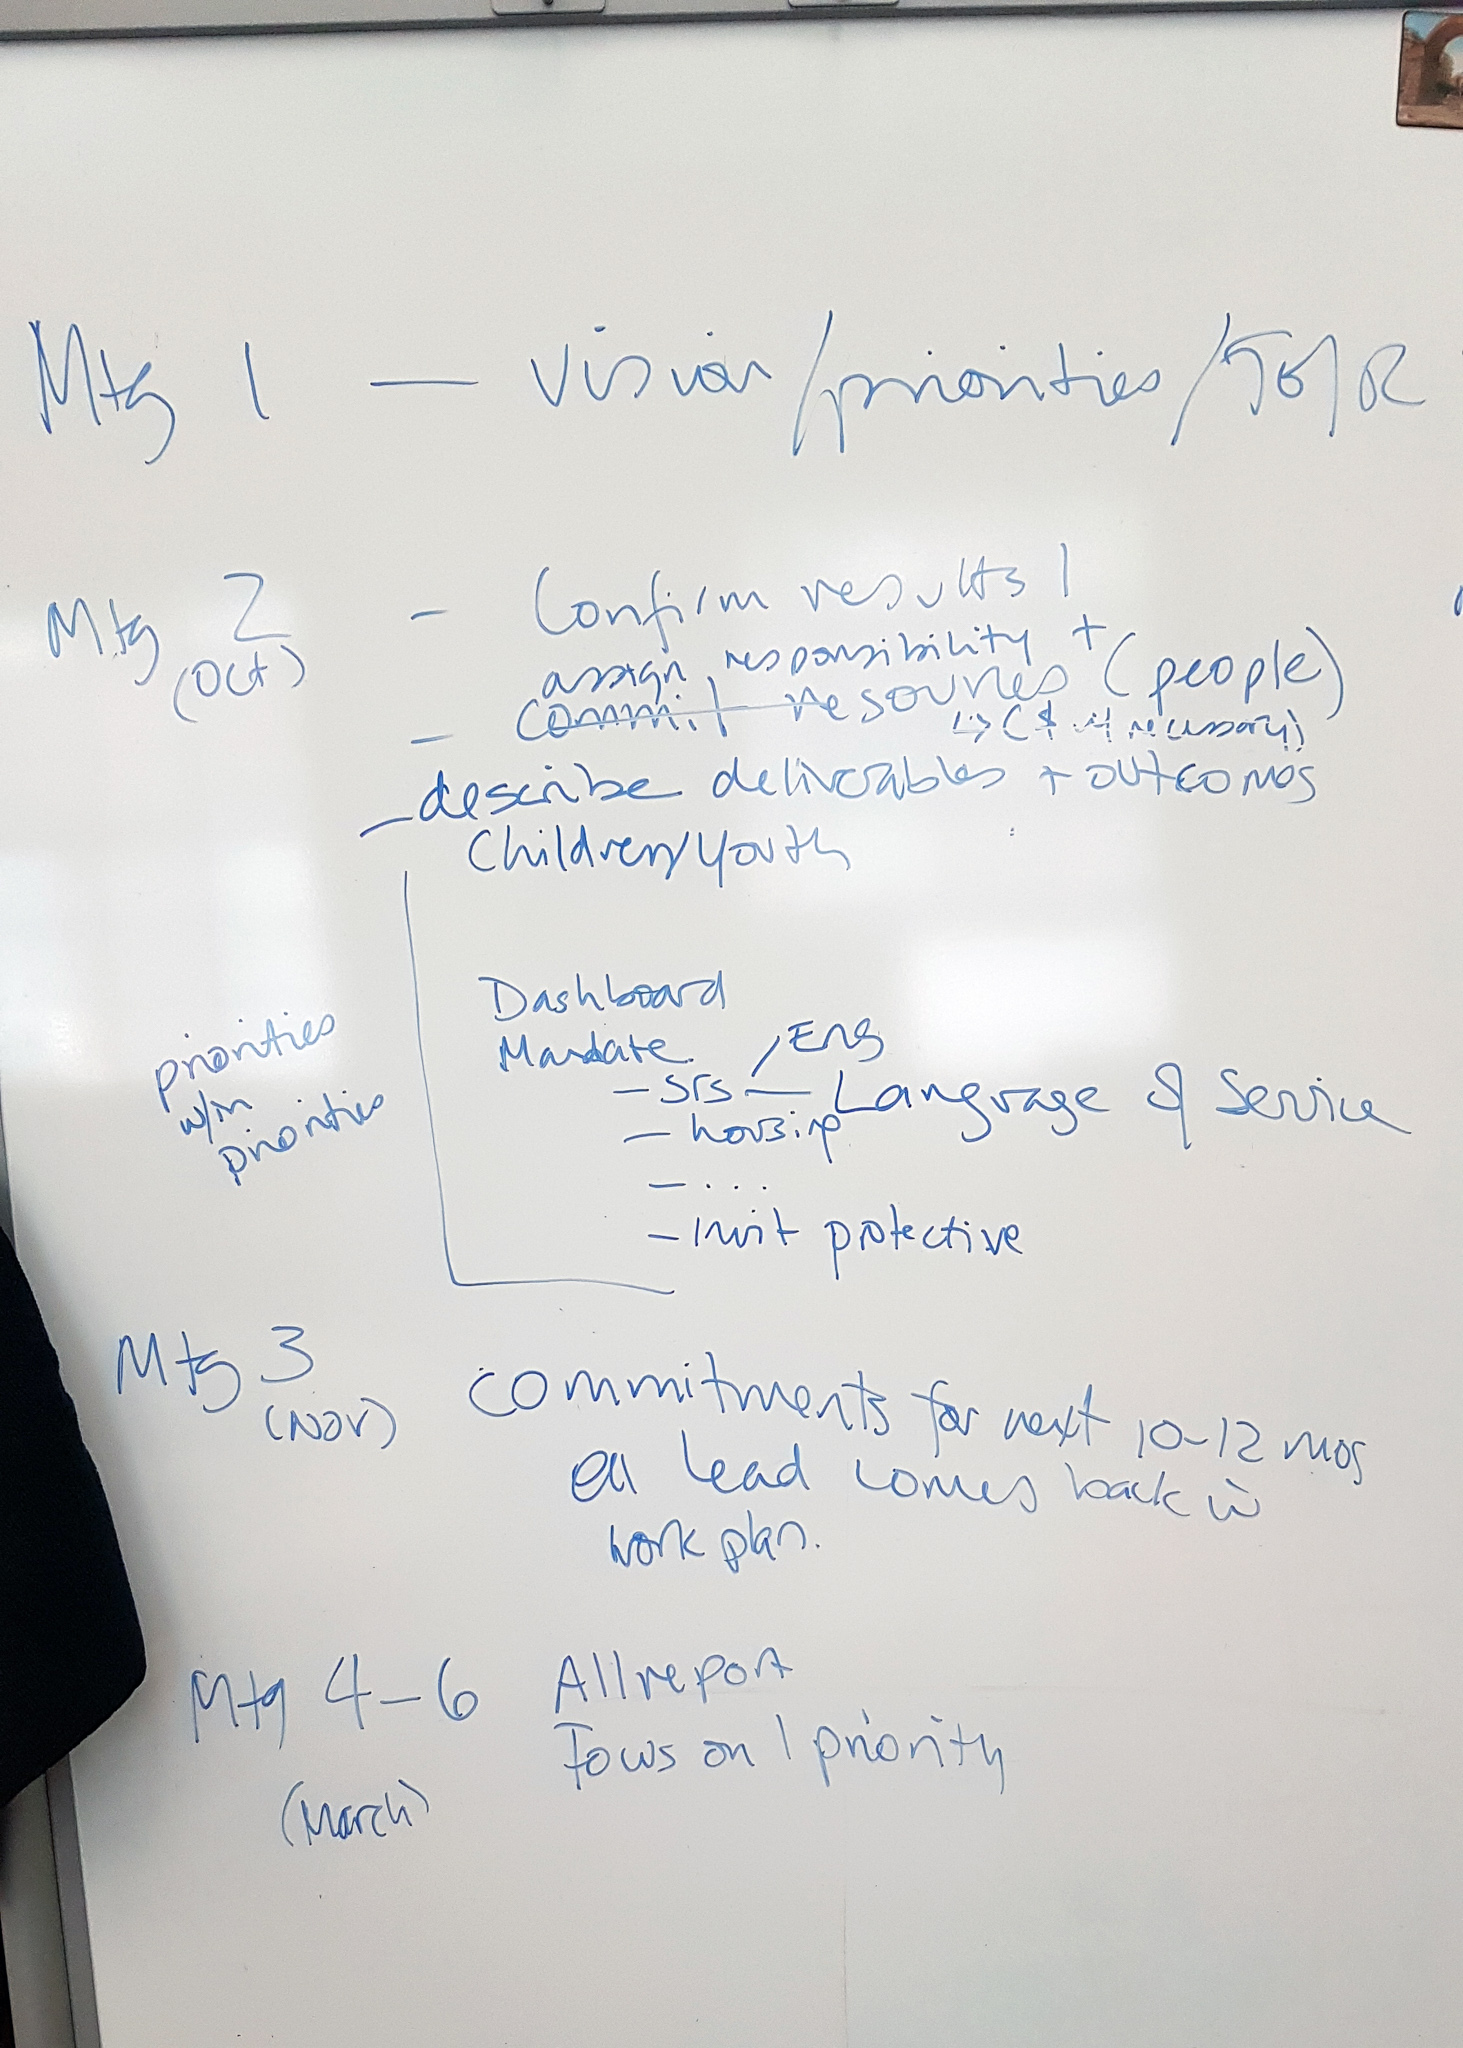 notes on whiteboard